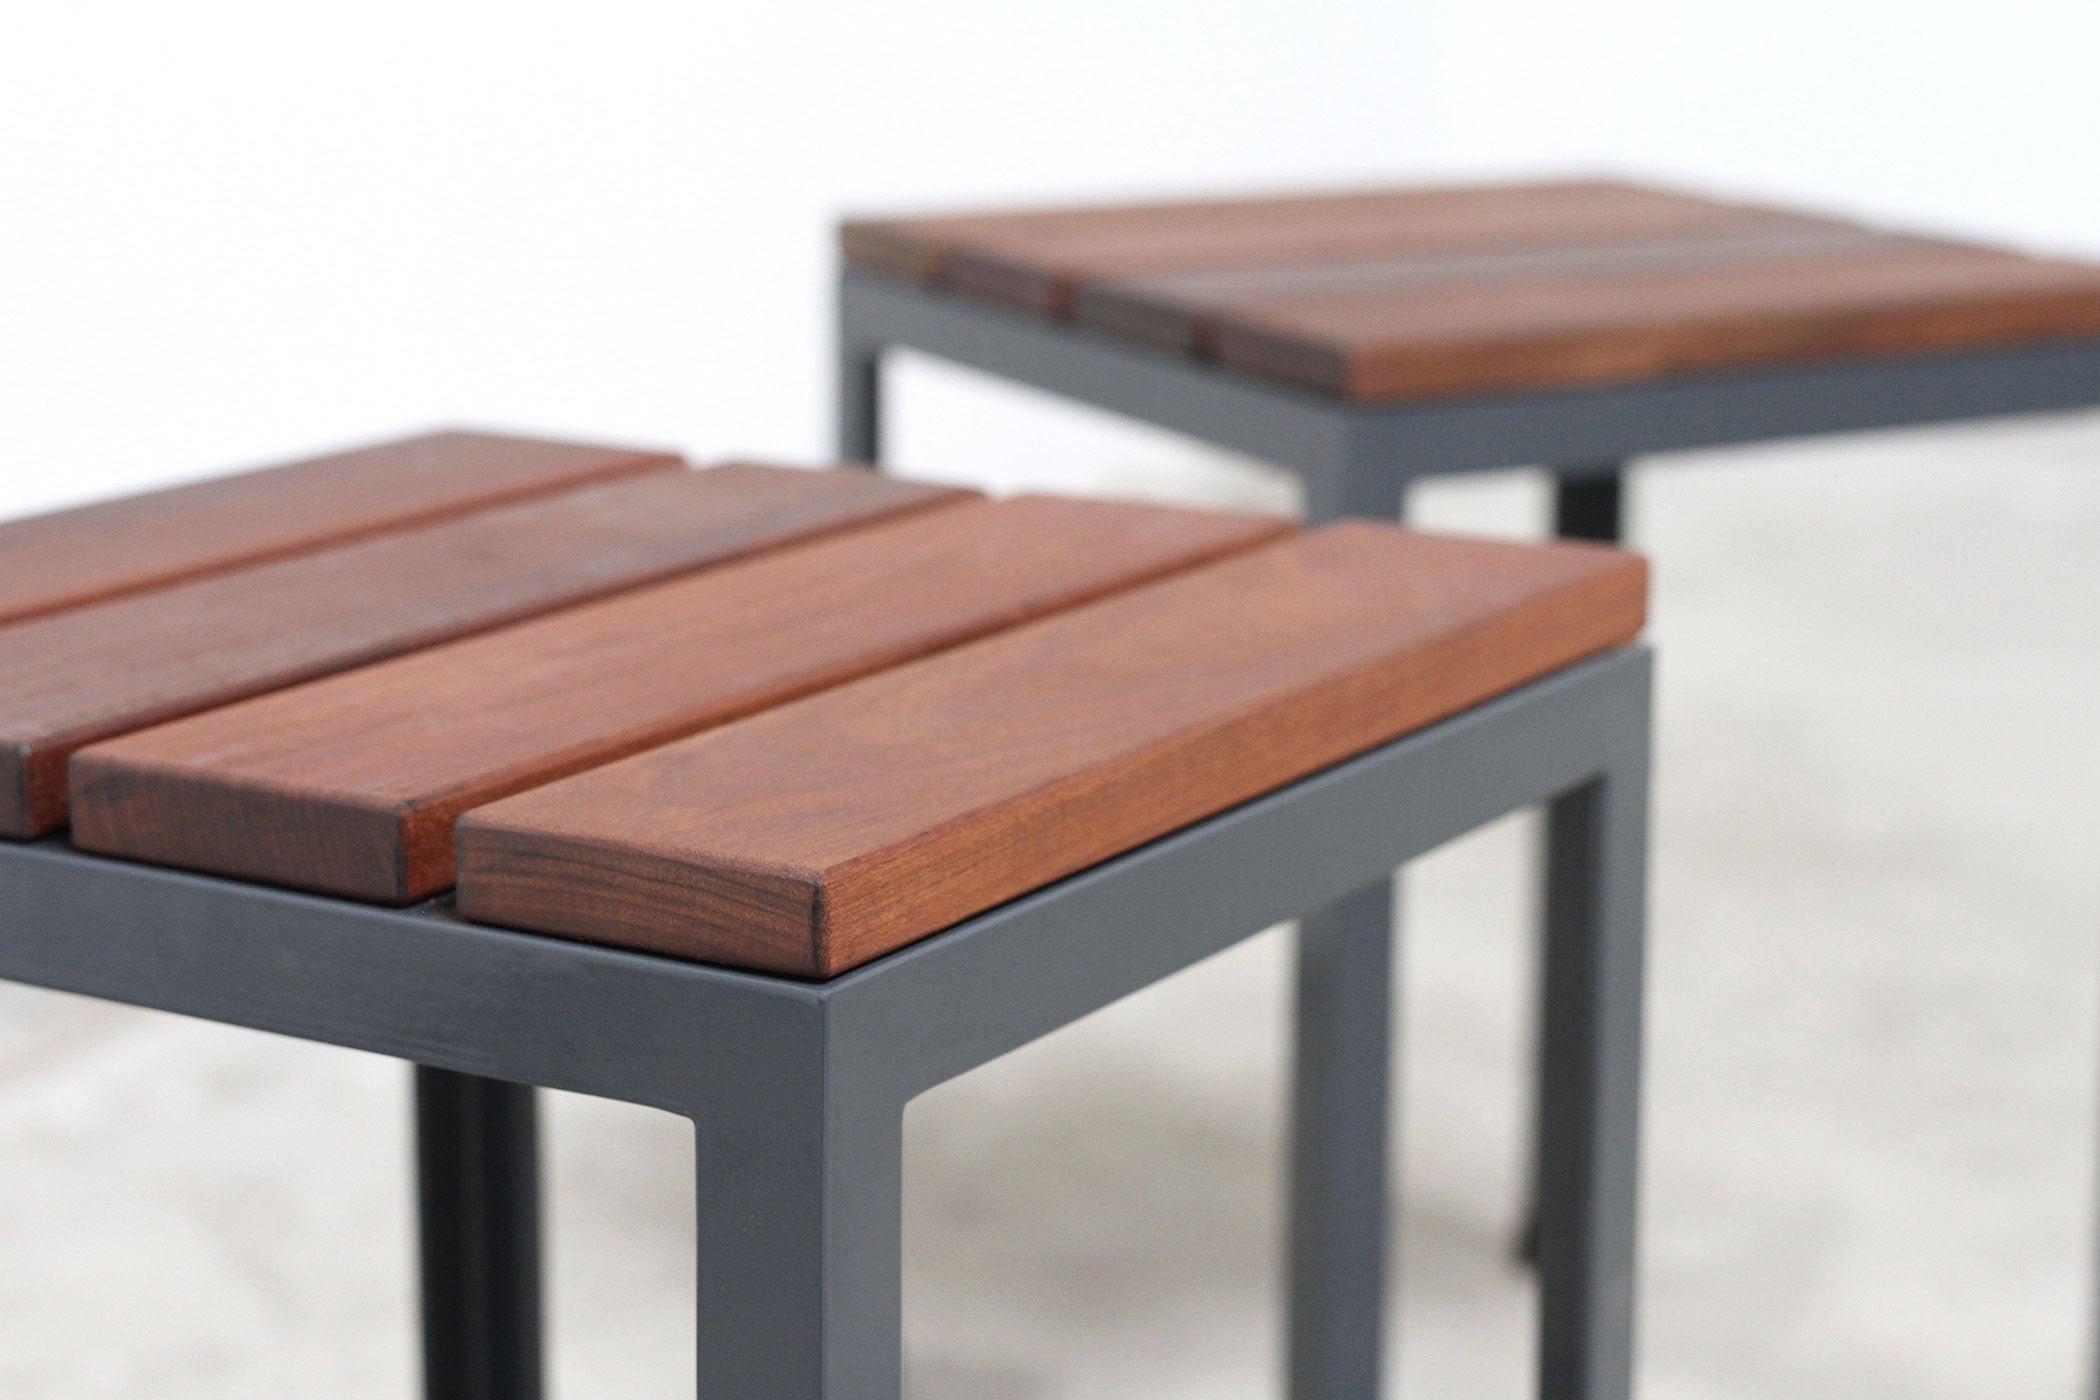 RAD Furniture's Slatted Wood Knockaround Stools - detail